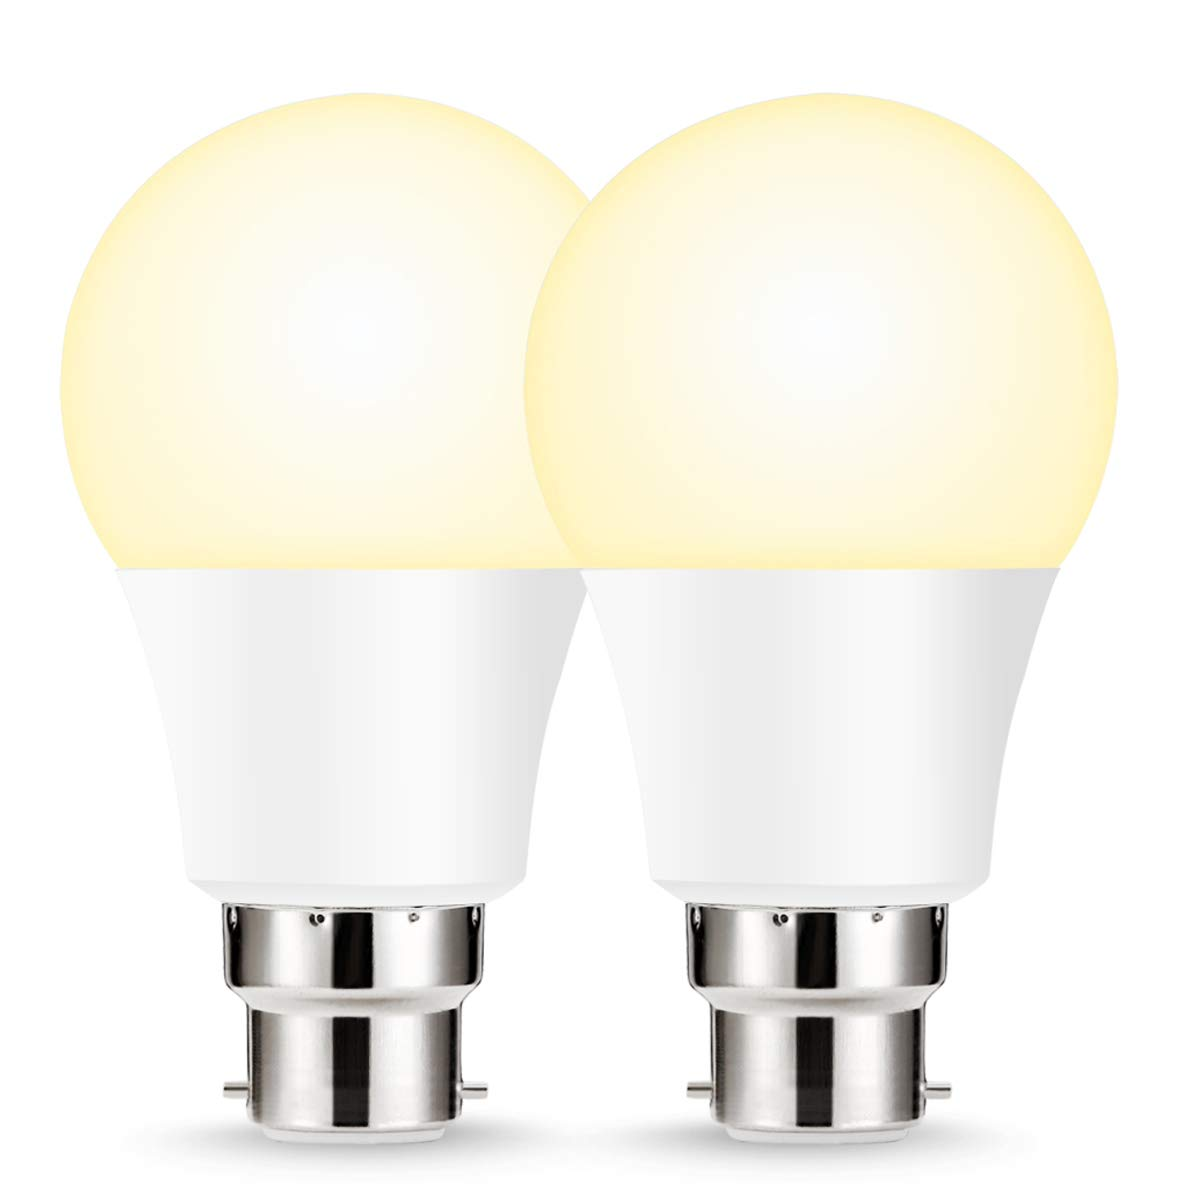 LOHAS LED B22 Smart Bulb, A60 WiFi Light Bulb, Compatible with Amazon Alexa, Google Home, Warm White 2700K, Remote Control by Smartphone iOS & Android